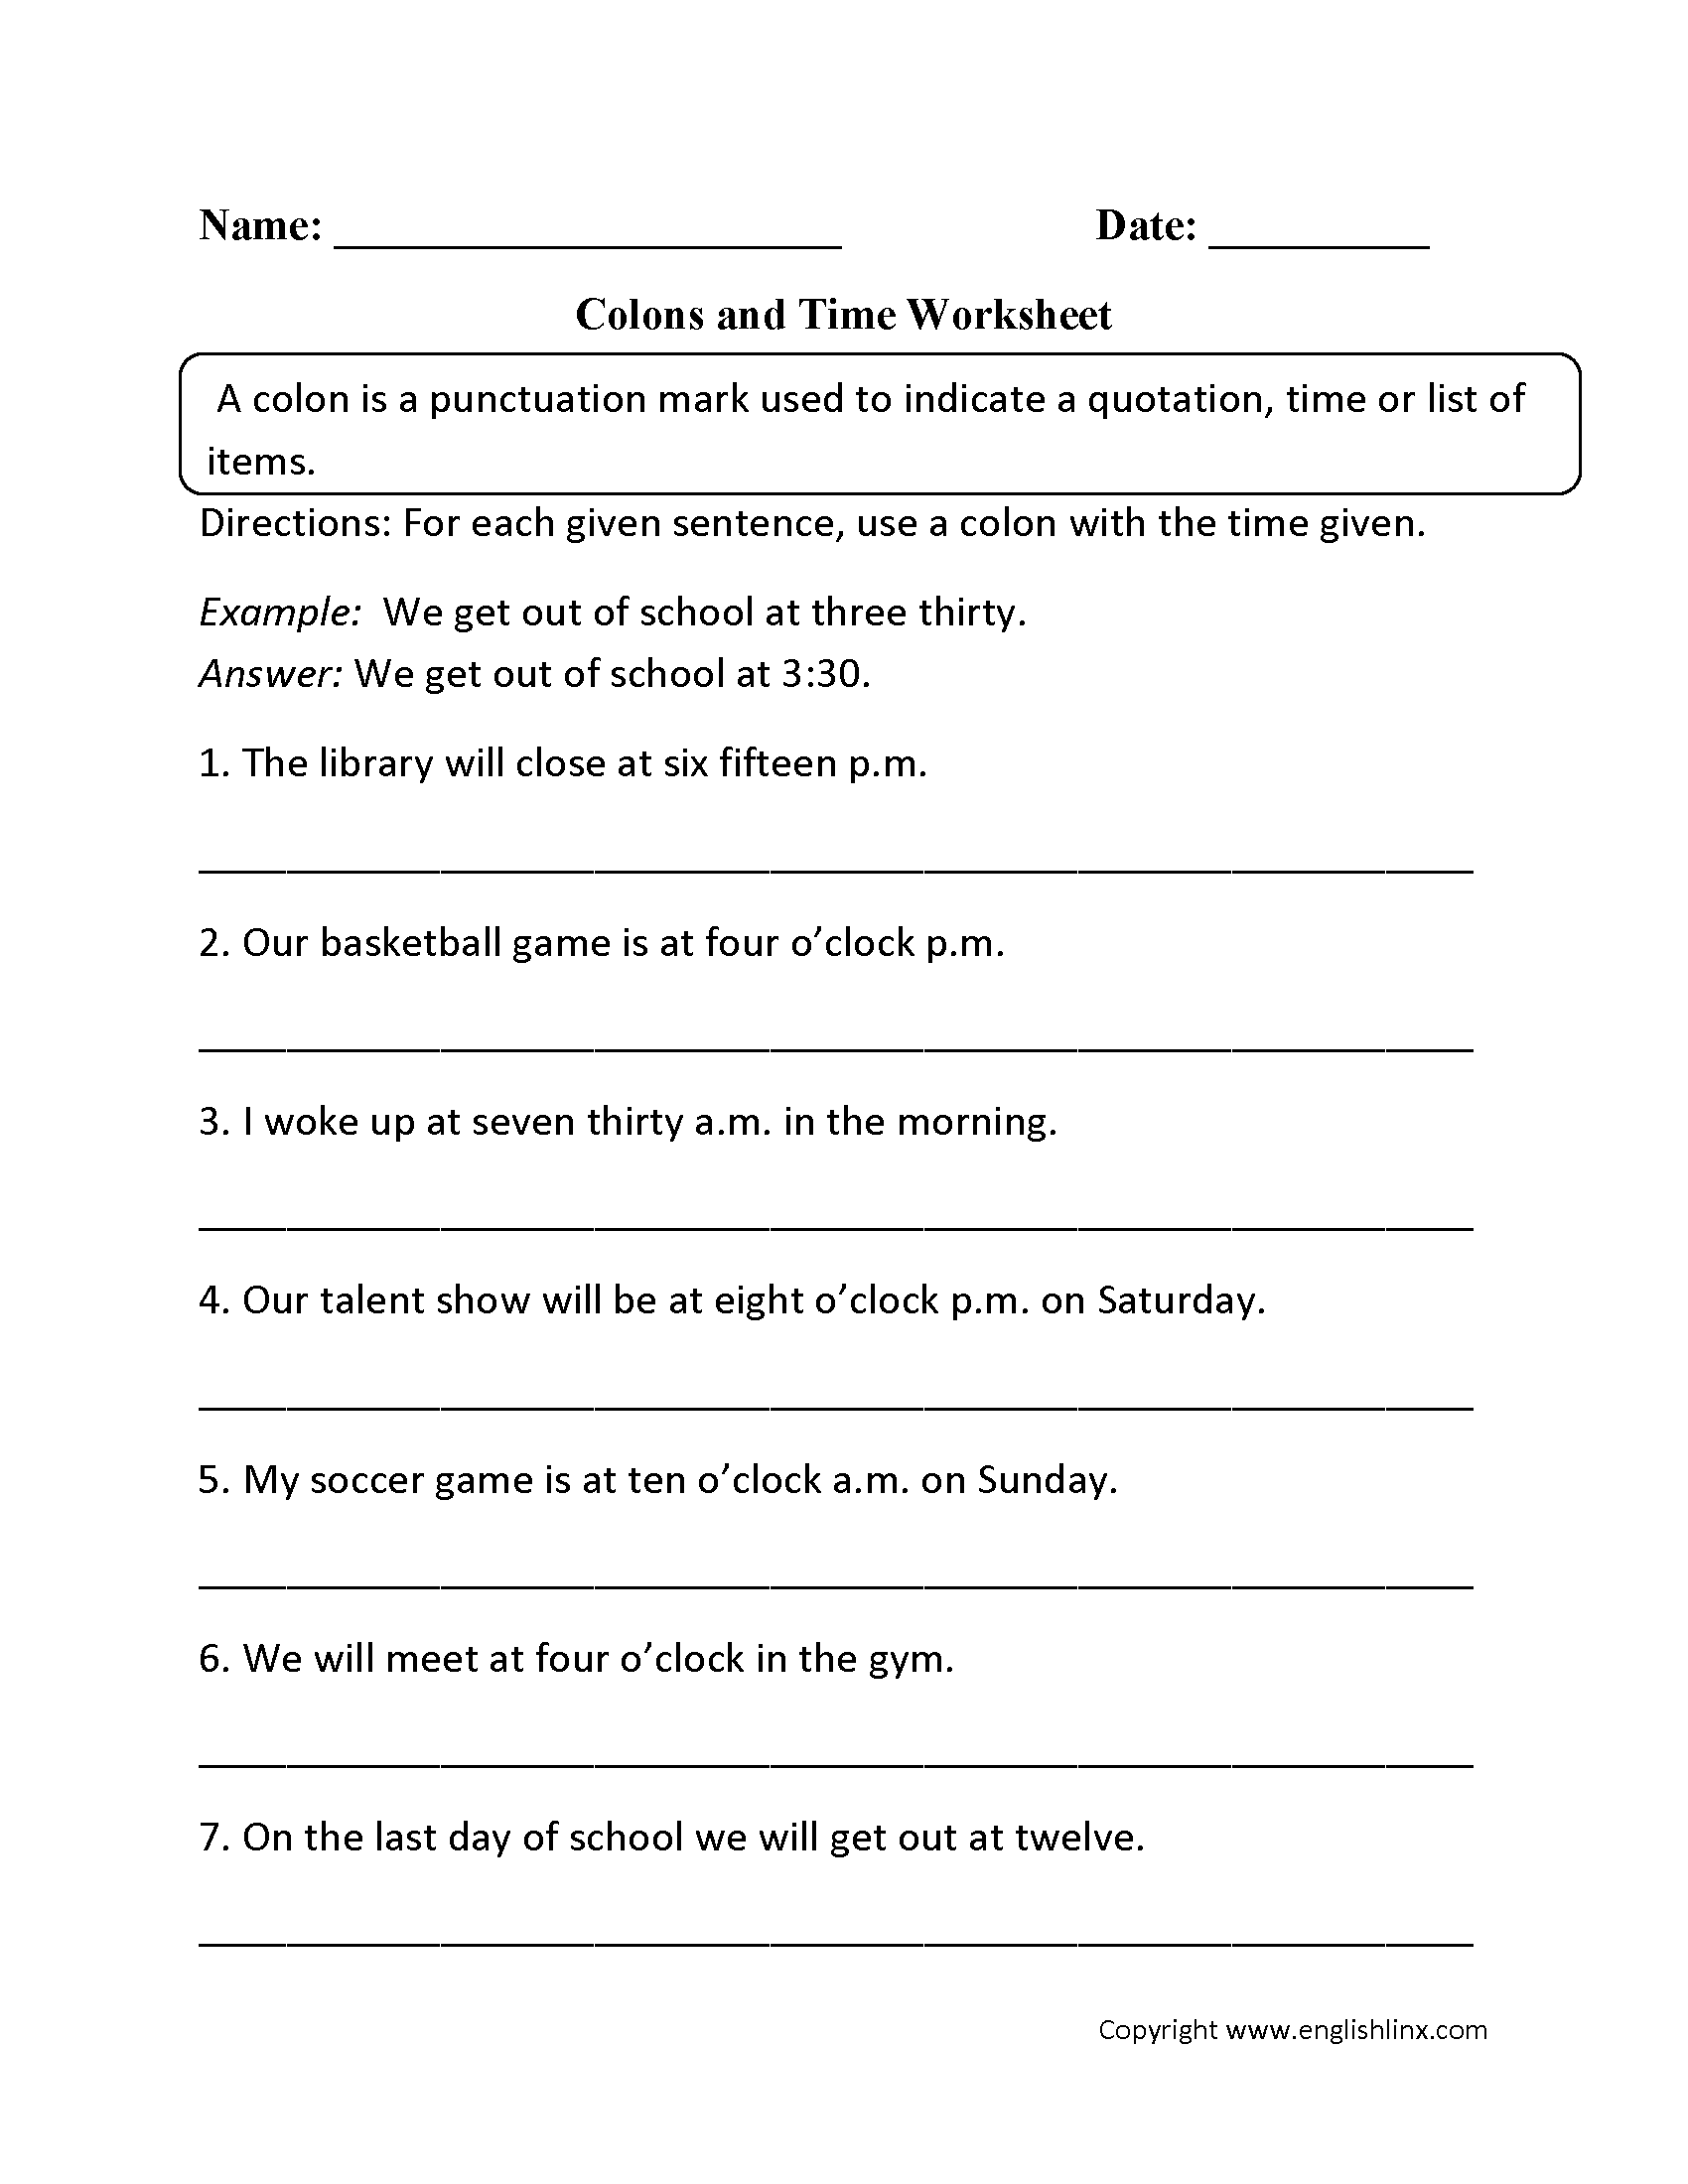 Worksheets Grammar For 4th Grade Worksheets punctuation worksheets colon worksheets